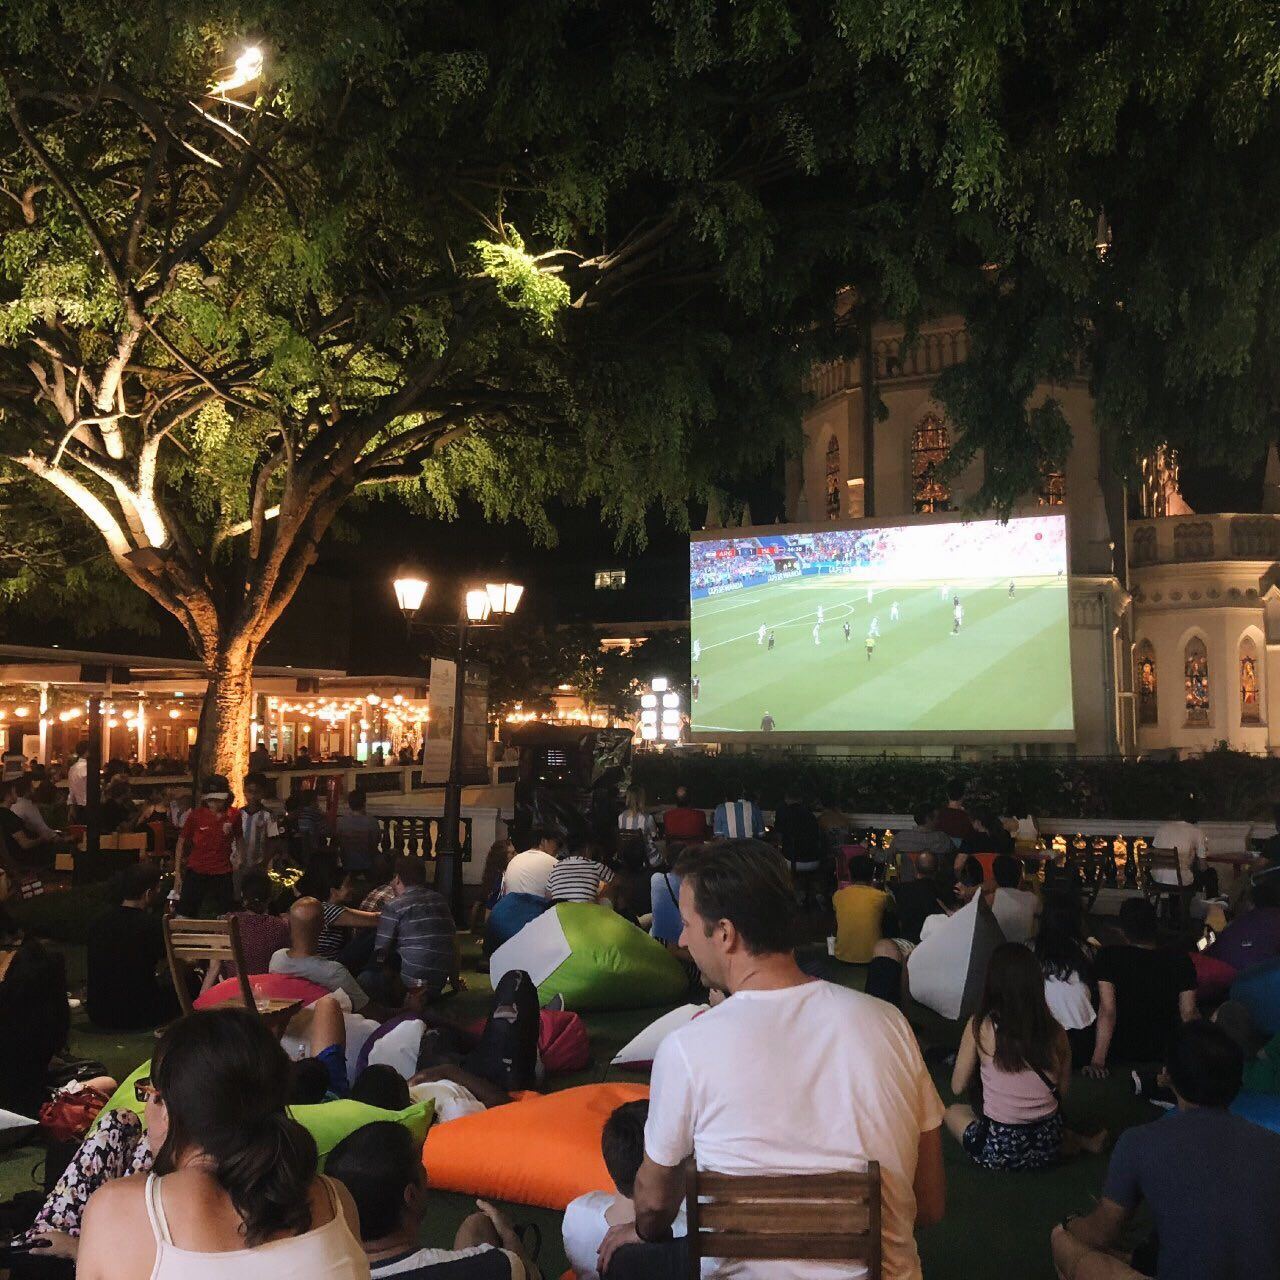 Chijmes-Venues-To-Watch-World-Cup-Singapore